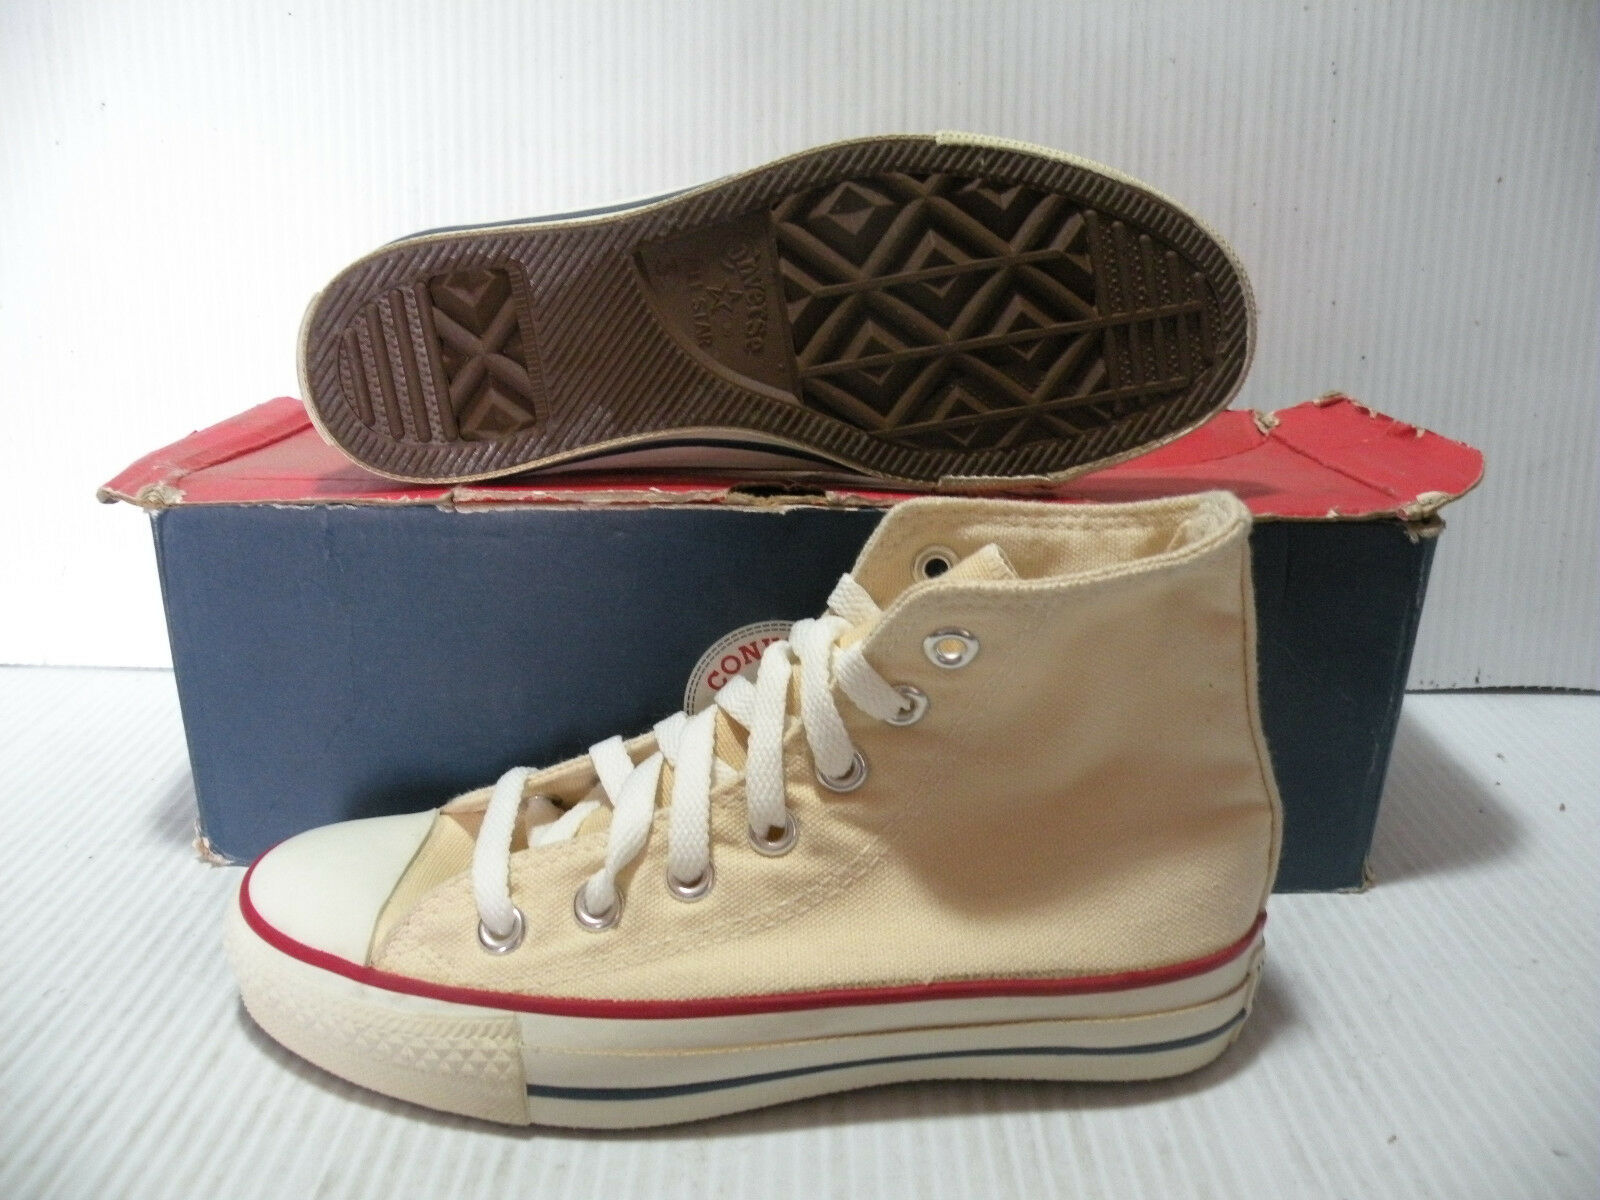 CONVERSE ALL STAR CHUCK TAYLOR VINTAGE MADE IN USA MEN 13 SHOES WHITE 13768 SIZE 13 MEN f91e8c